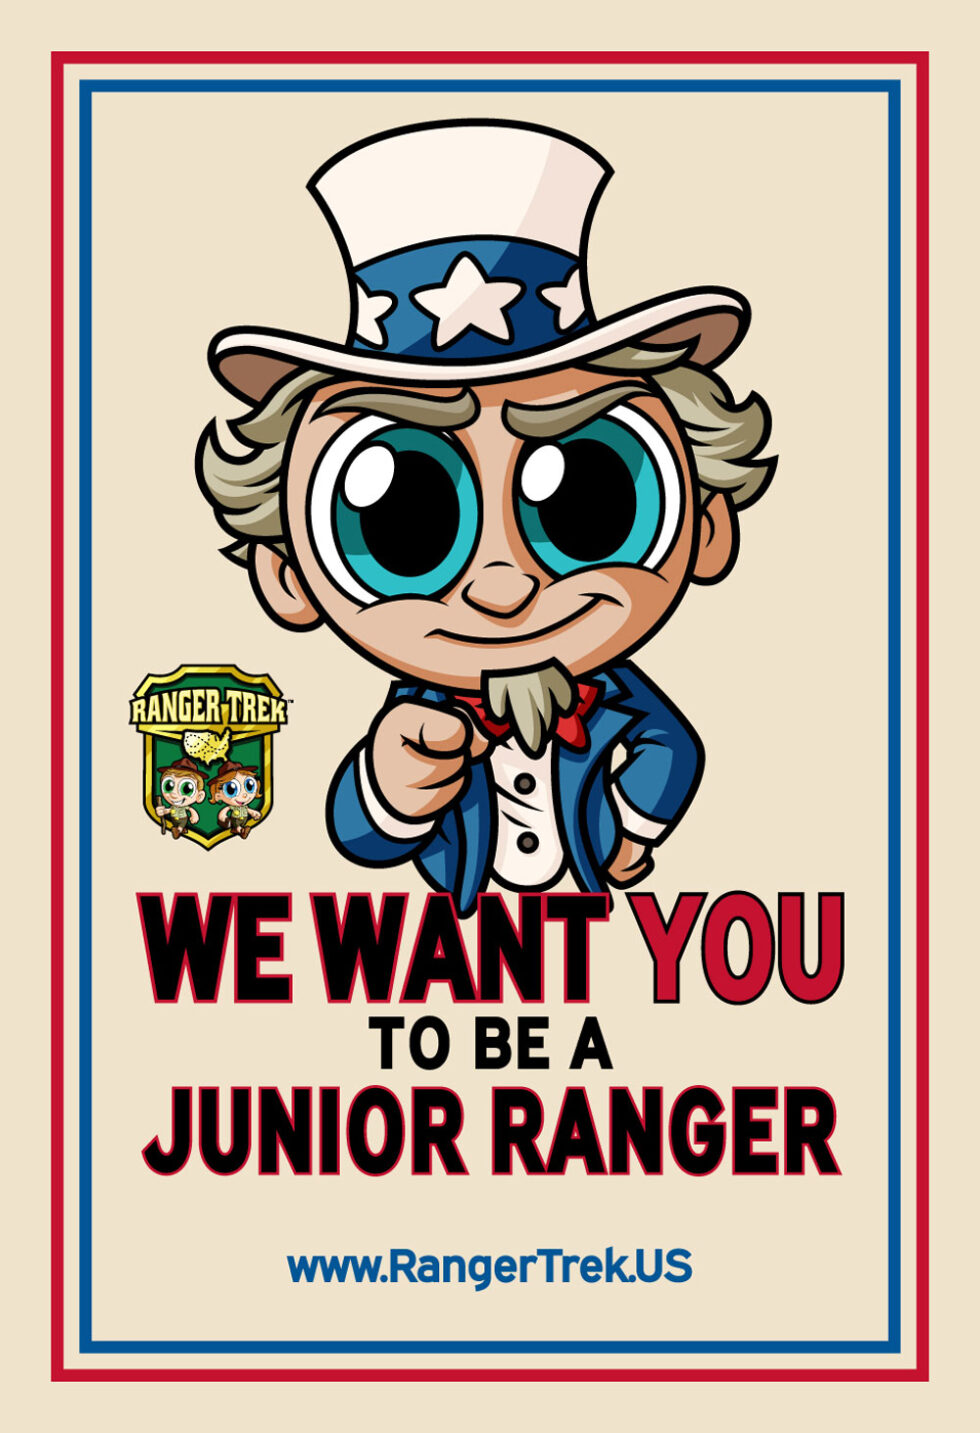 Uncle-Sam-Want-You-in-the-US-Army-Vintage-Vinyl-Sticker-Collectible-Ranger-Trek-National-Park-Junior-Ranger